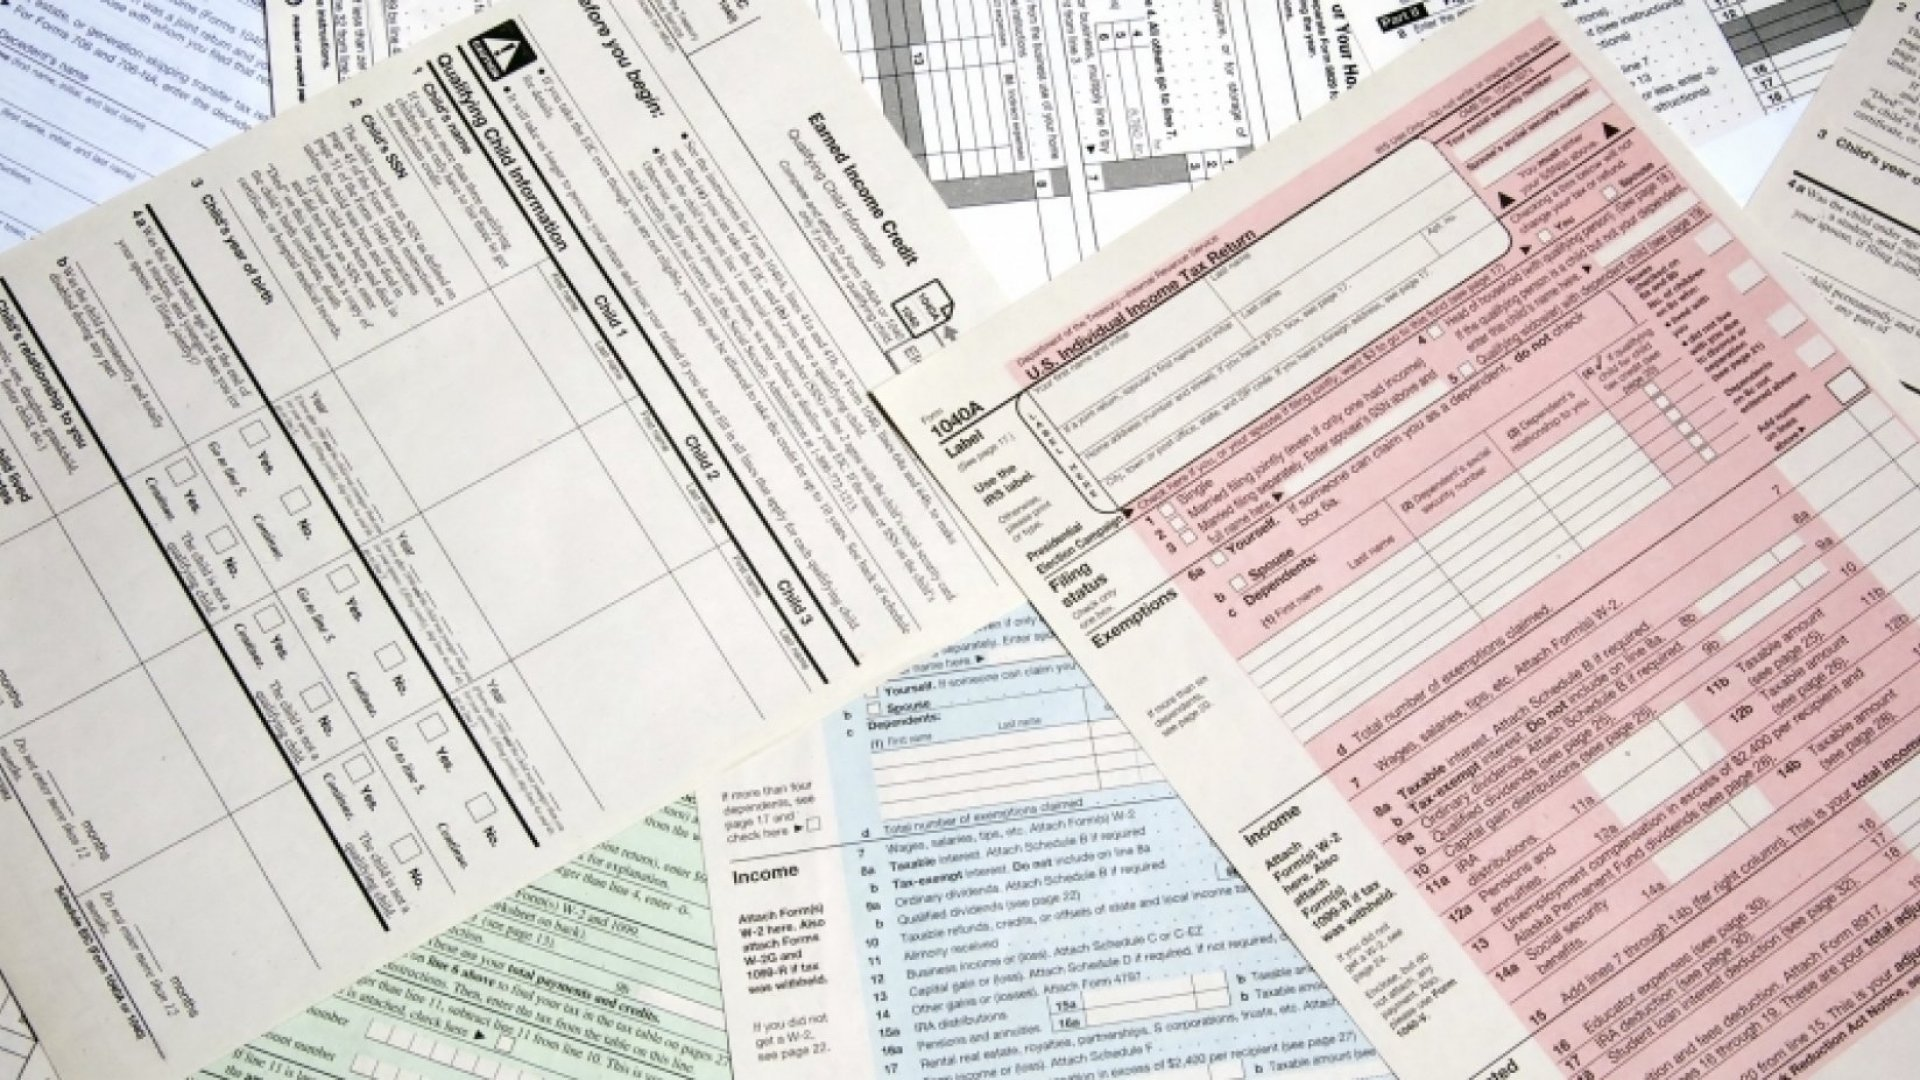 8 Ways to Reduce Your Anxiety About Filing Your Taxes